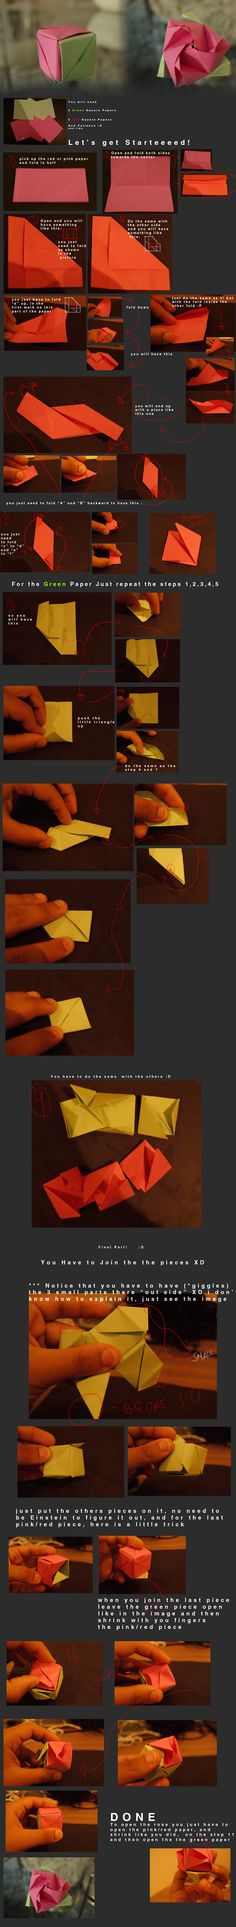 Magic Box Origami tutorial by CarlosArthur.deviantart.com